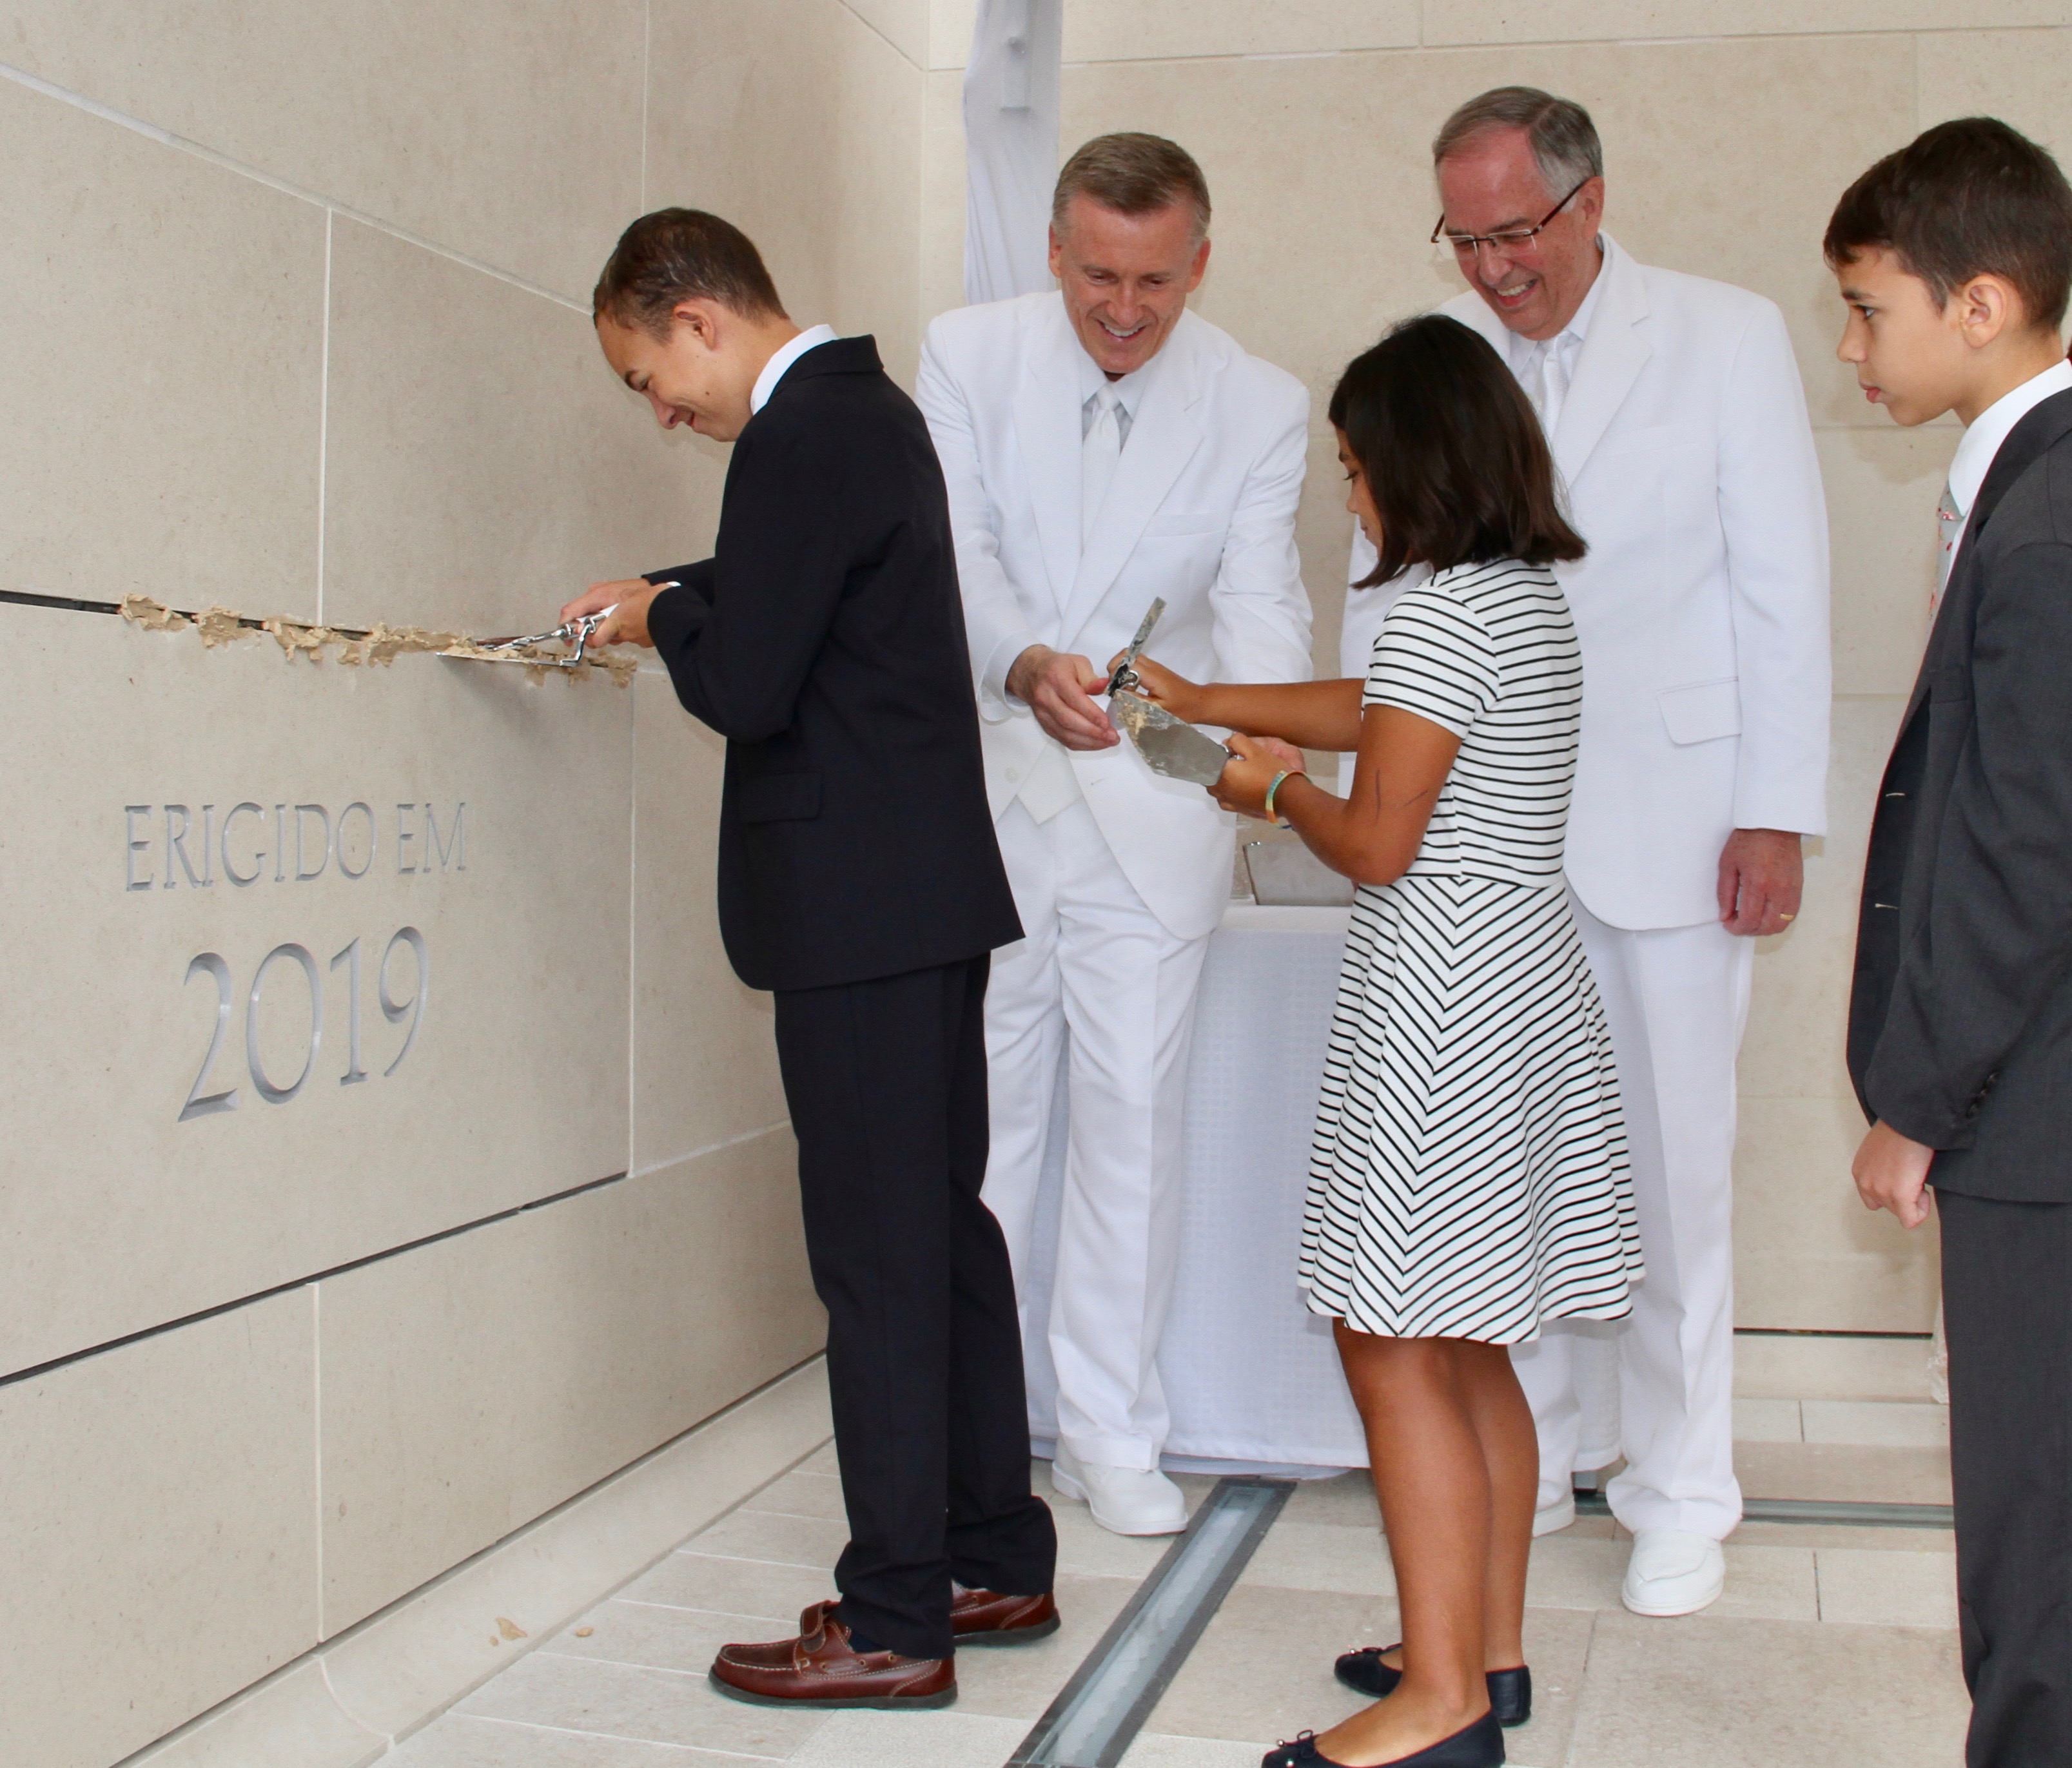 Children participating in the cornerstone ceremony of the Lisbon Portugal Temple dedication on Sunday, Sept. 15, 2019, are assisted by Elder Kevin R. Duncan, behind left, and Elder Neil L. Andersen, behind right.